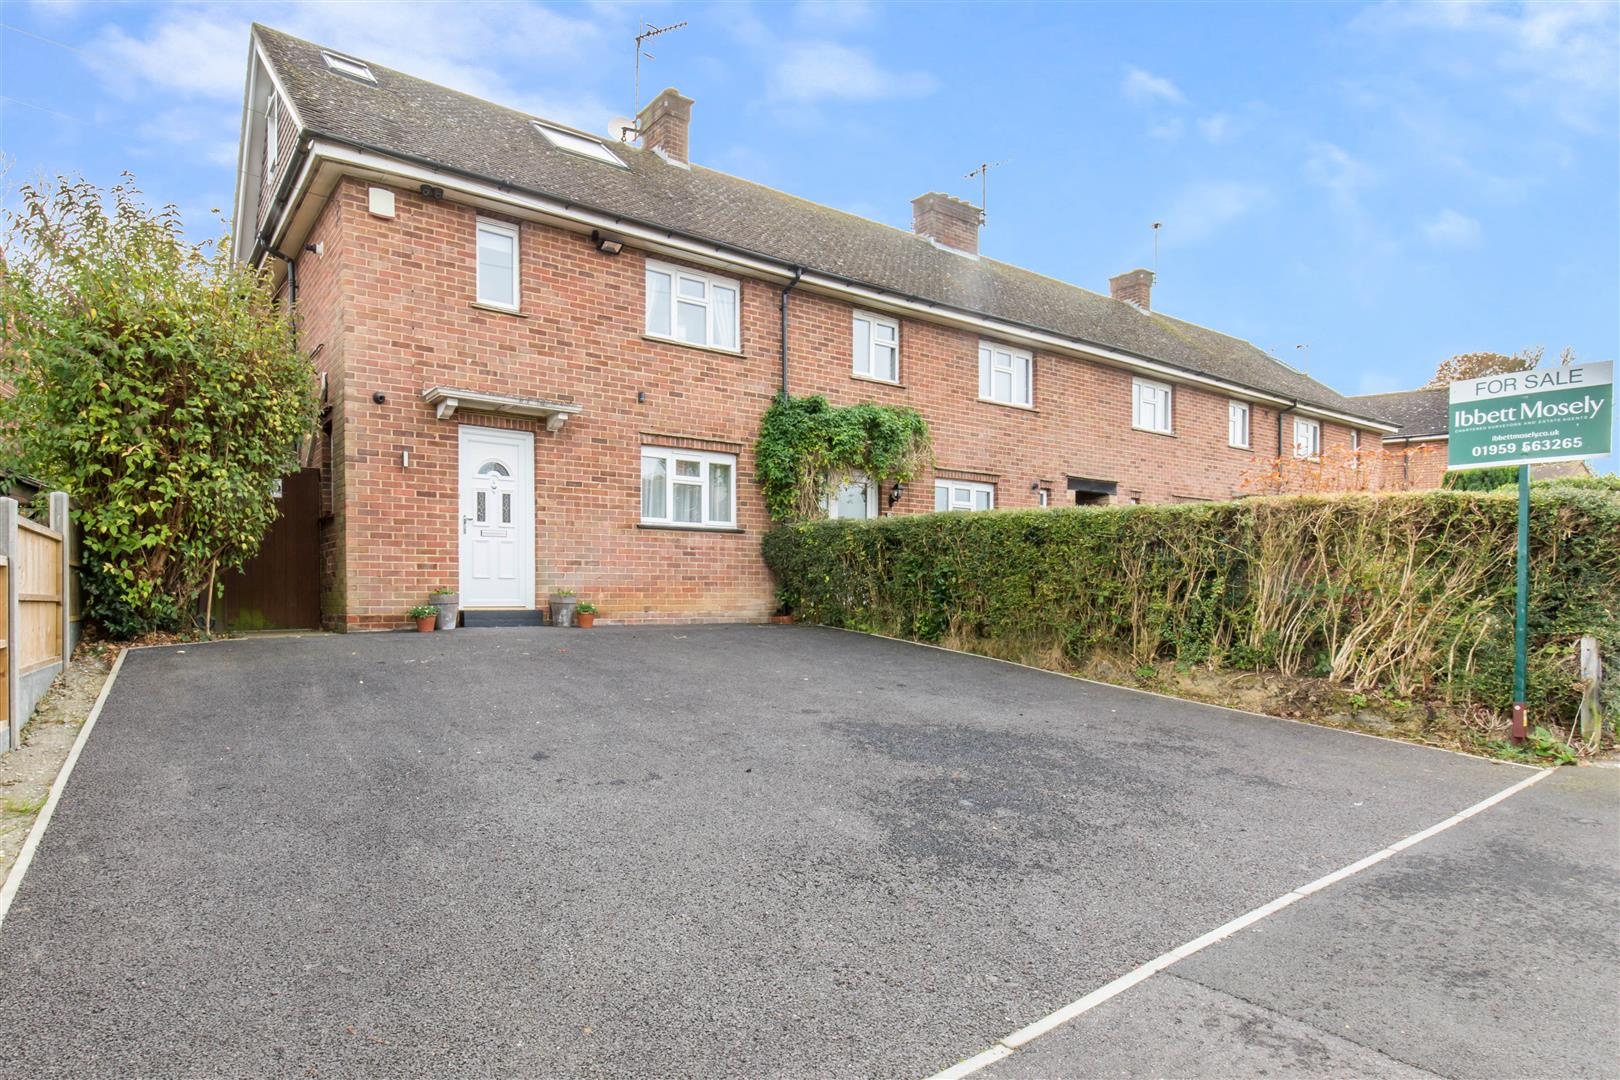 3 Bedrooms End Of Terrace House for sale in New Farthingdale, Dormansland, Lingfield